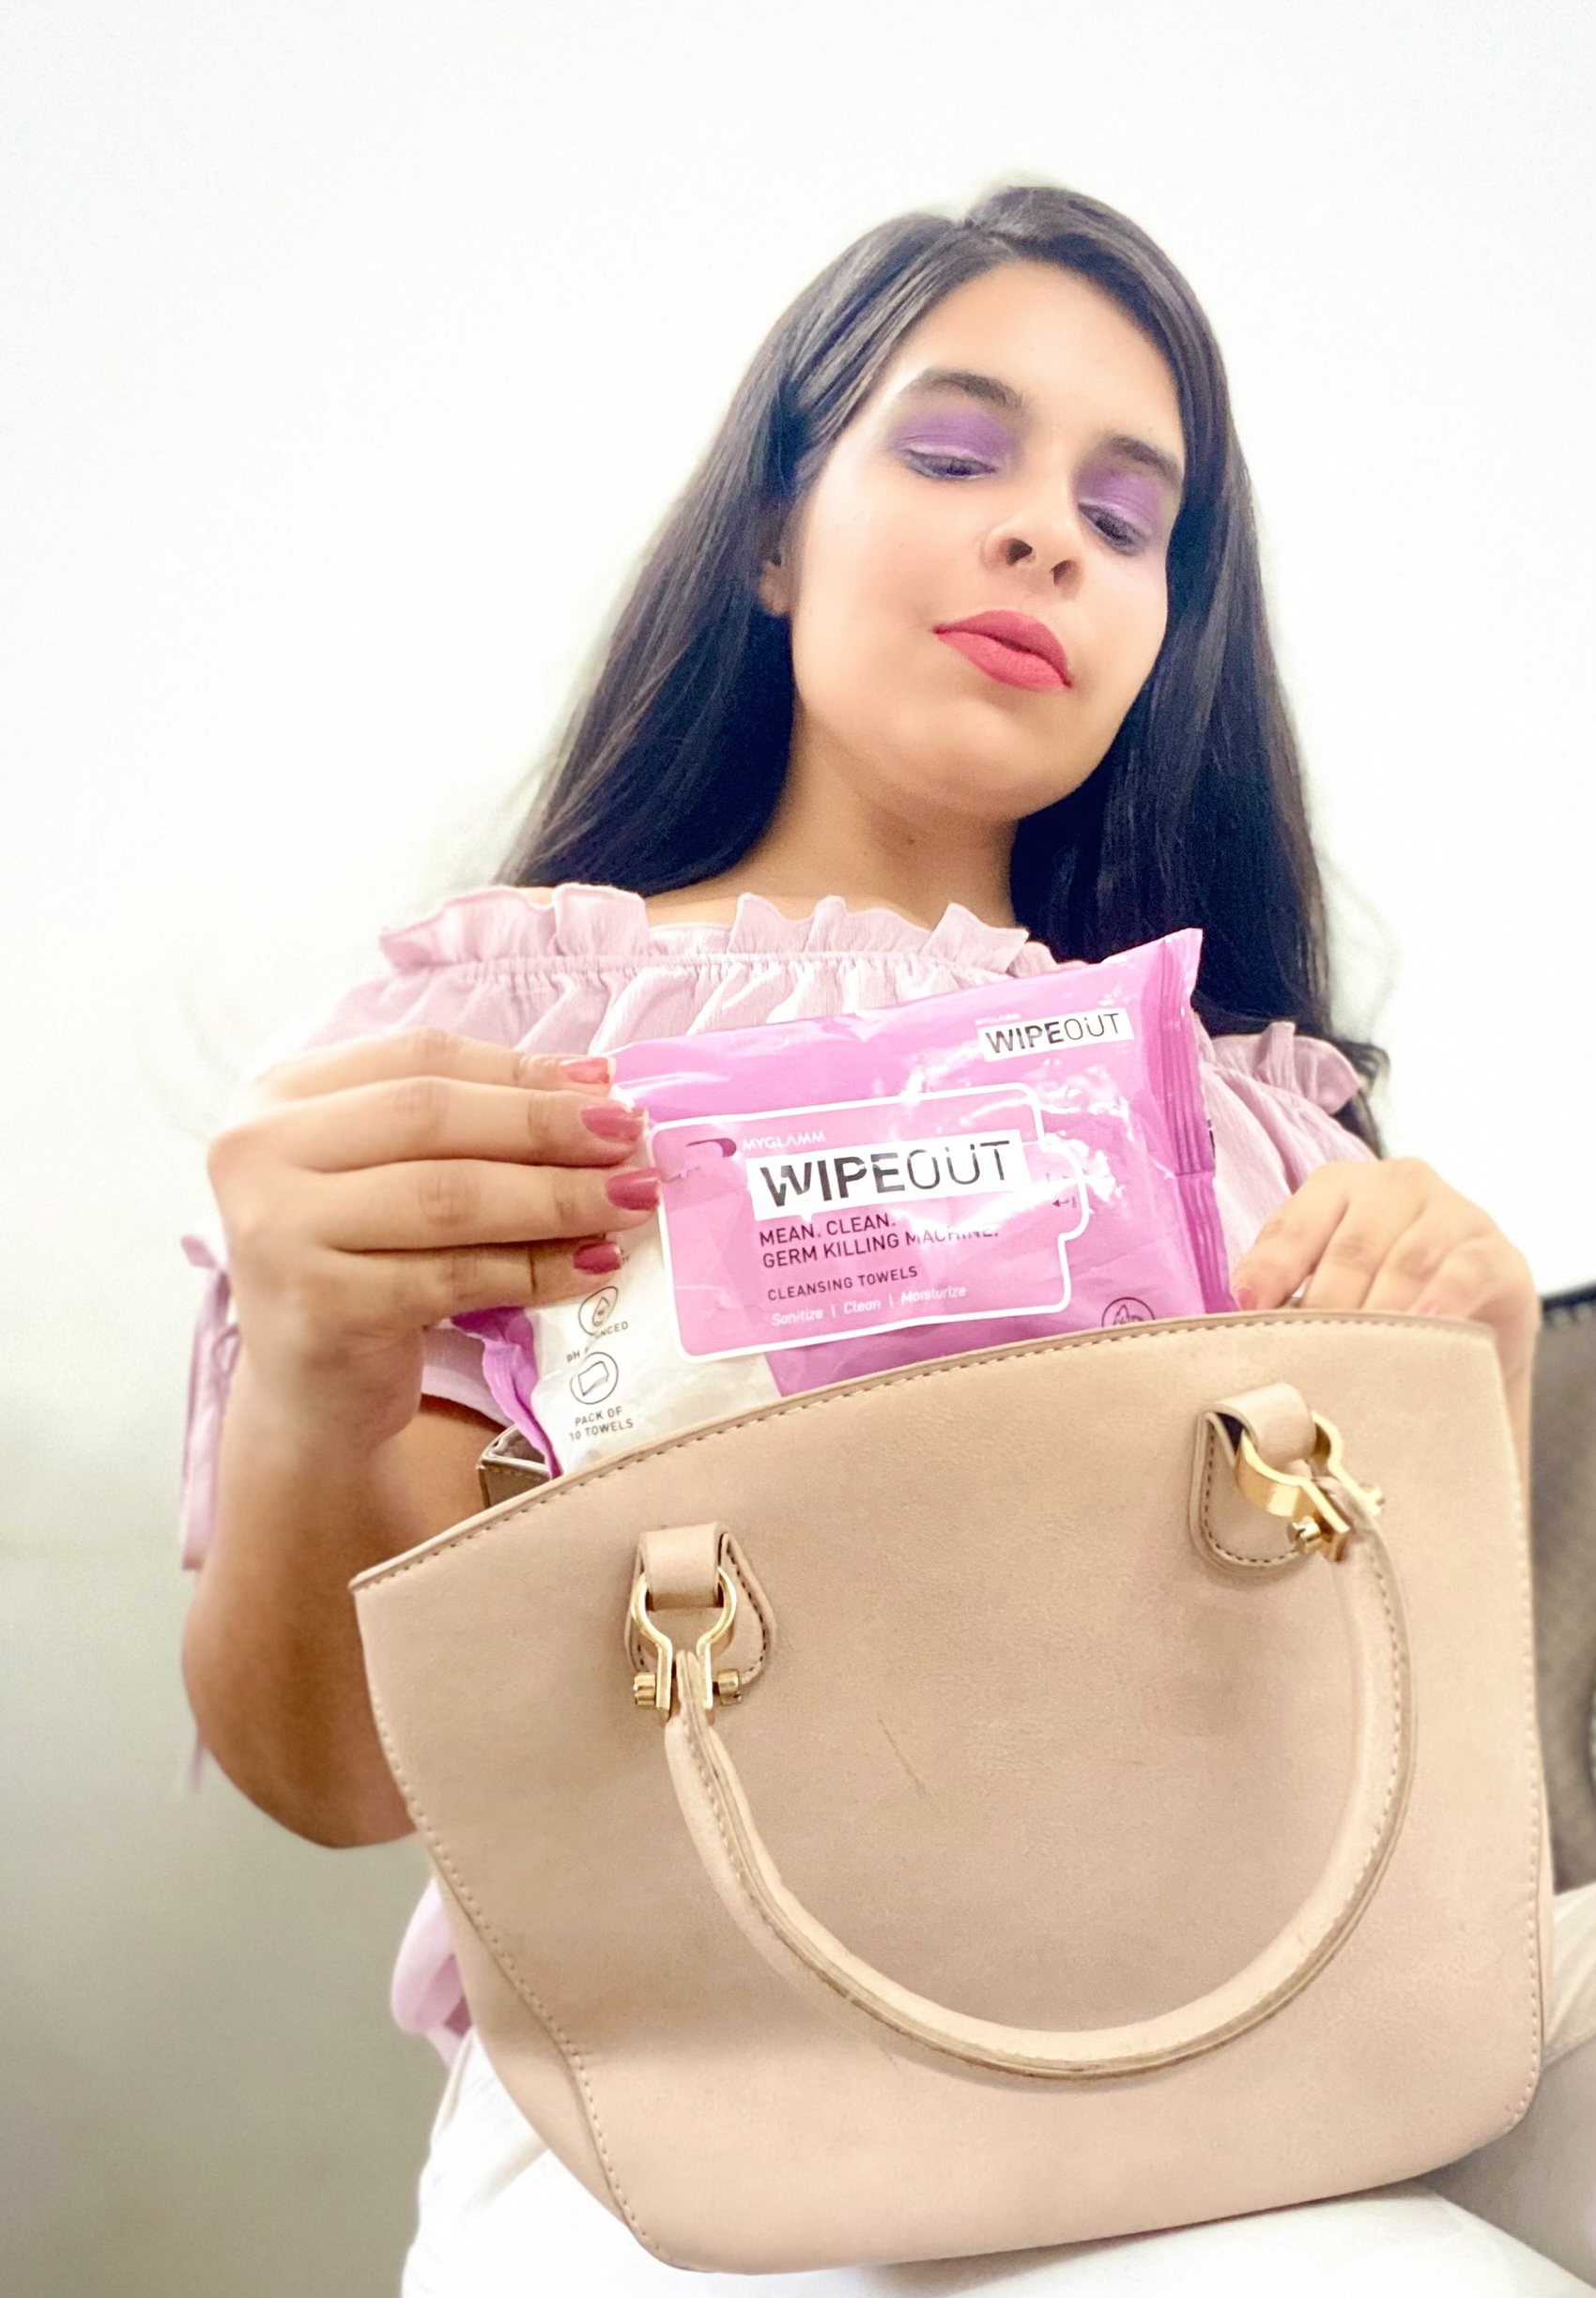 MyGlamm Wipeout Cleansing Towels-Really a great product-By meghnatilokani-3